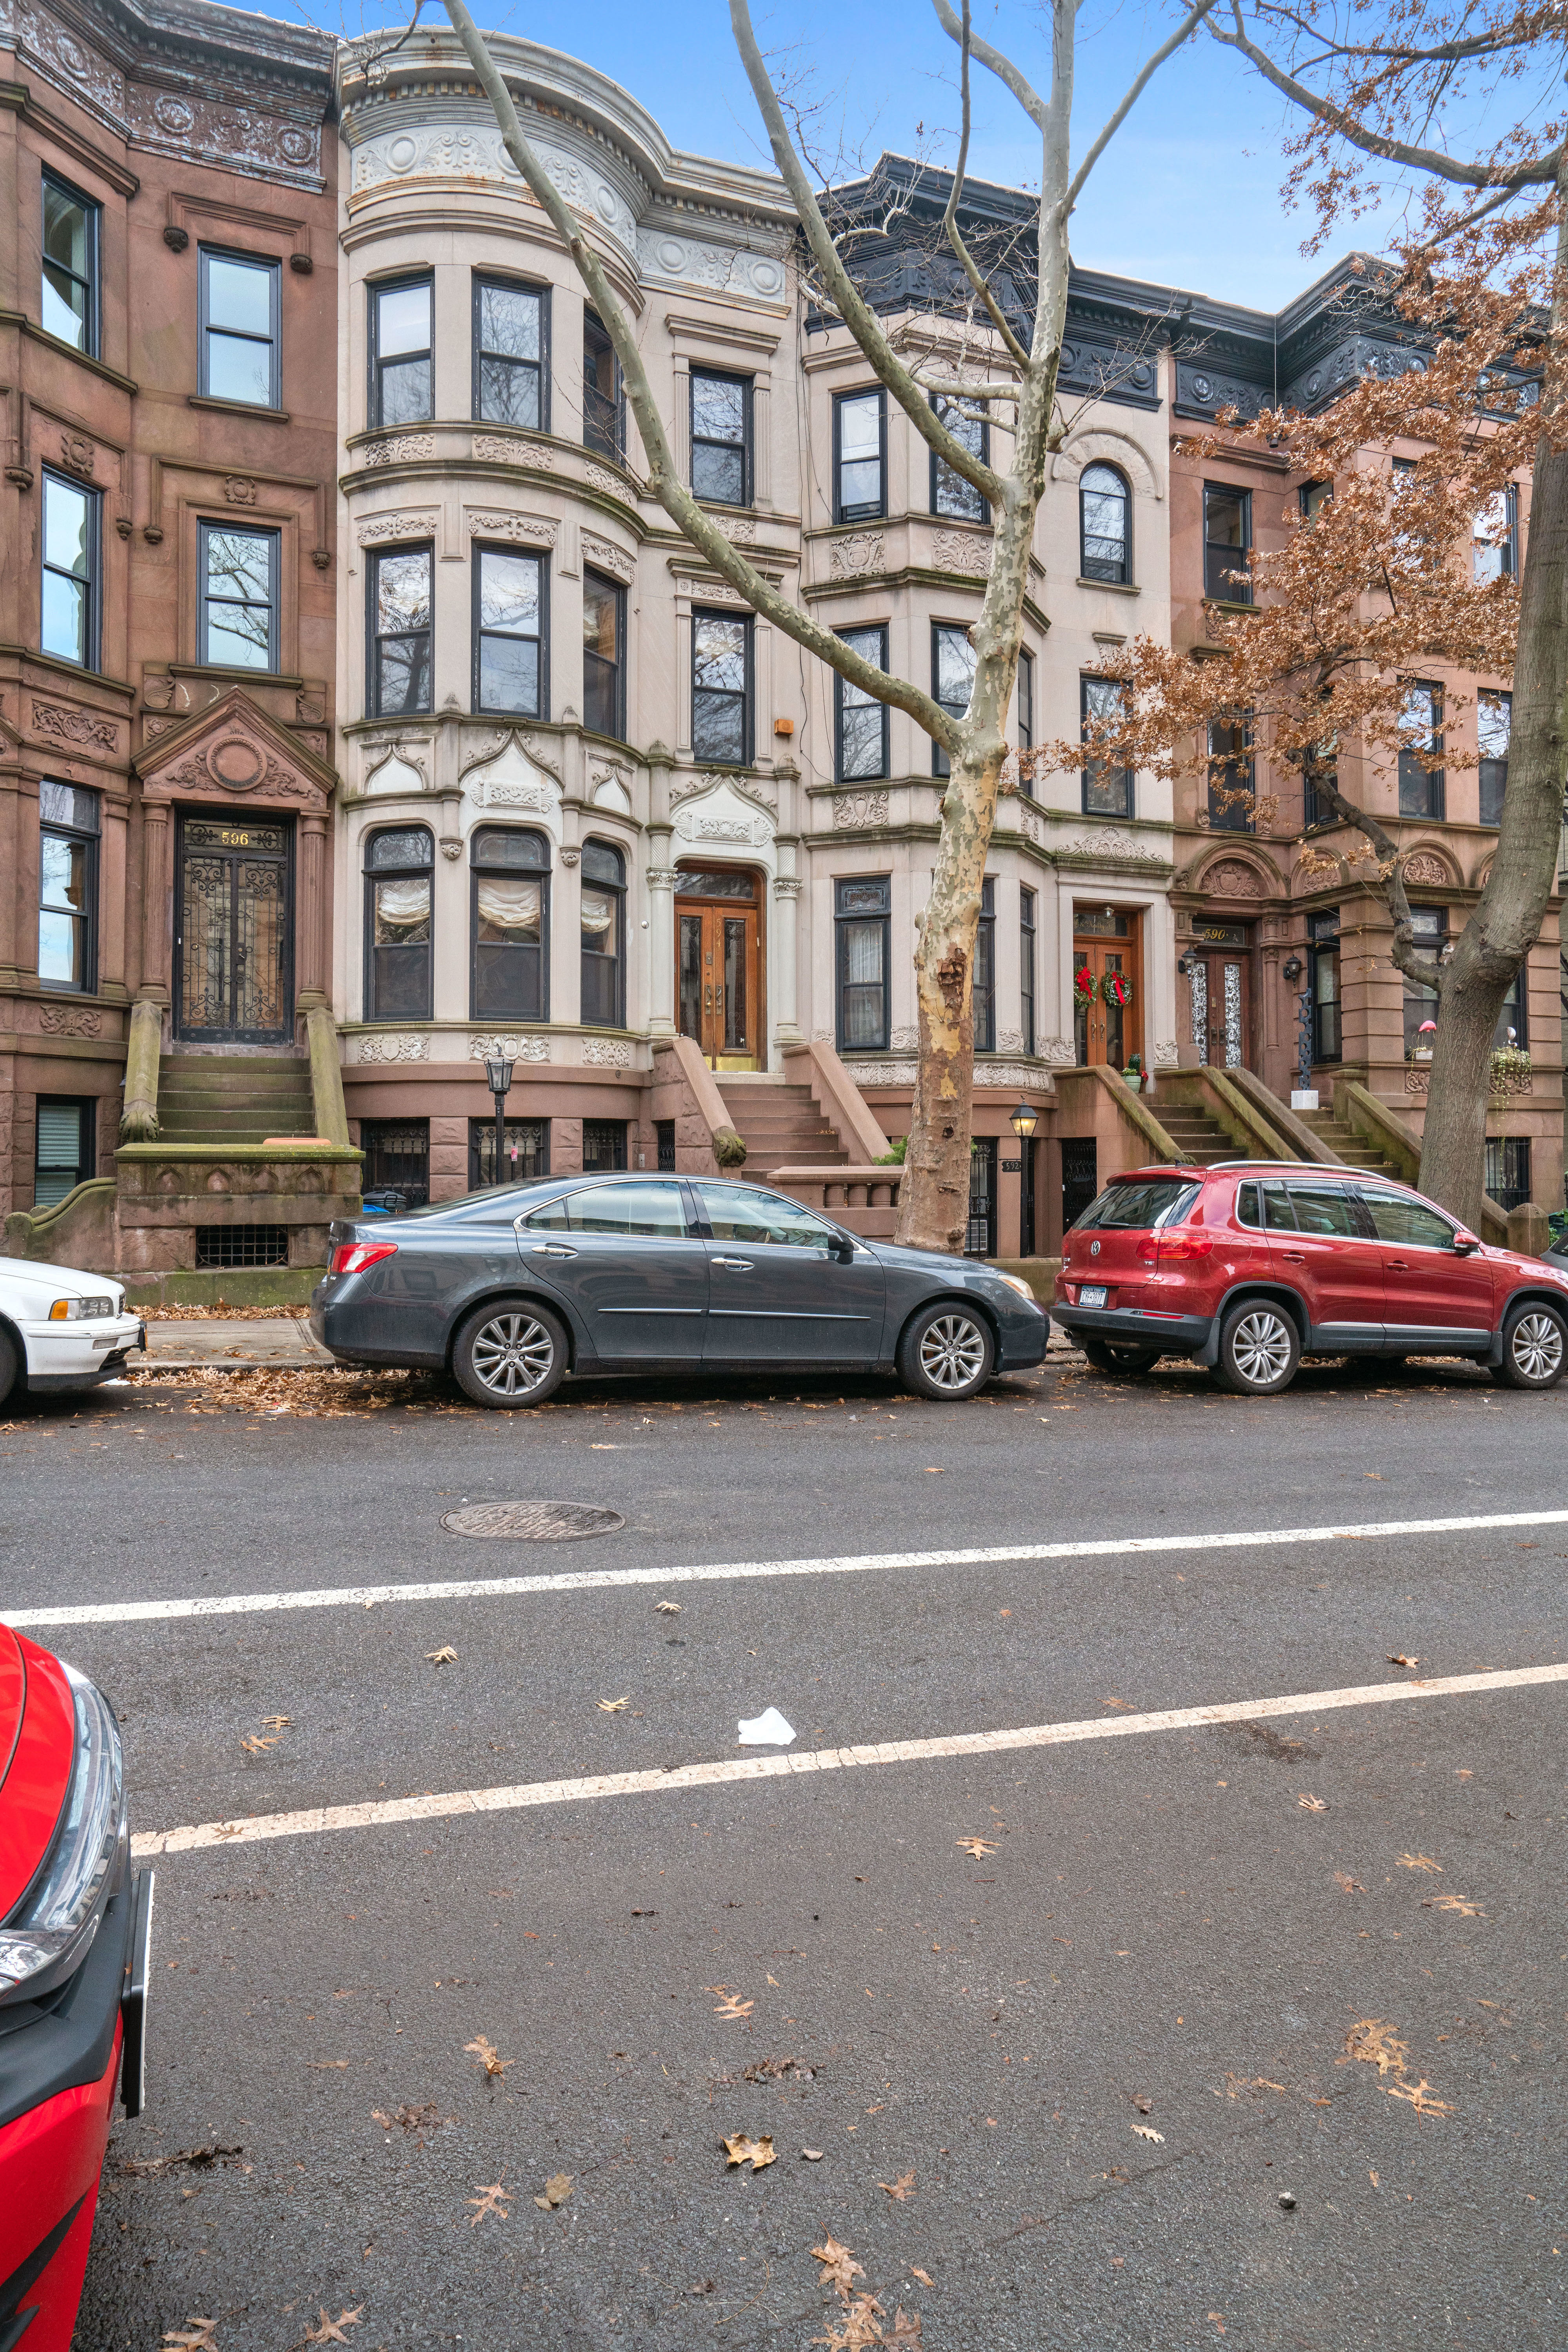 594 2nd St Photo 2 - BROWNSTONER-LISTING-47512a55ccfbbeb19b0a8fb315f62163